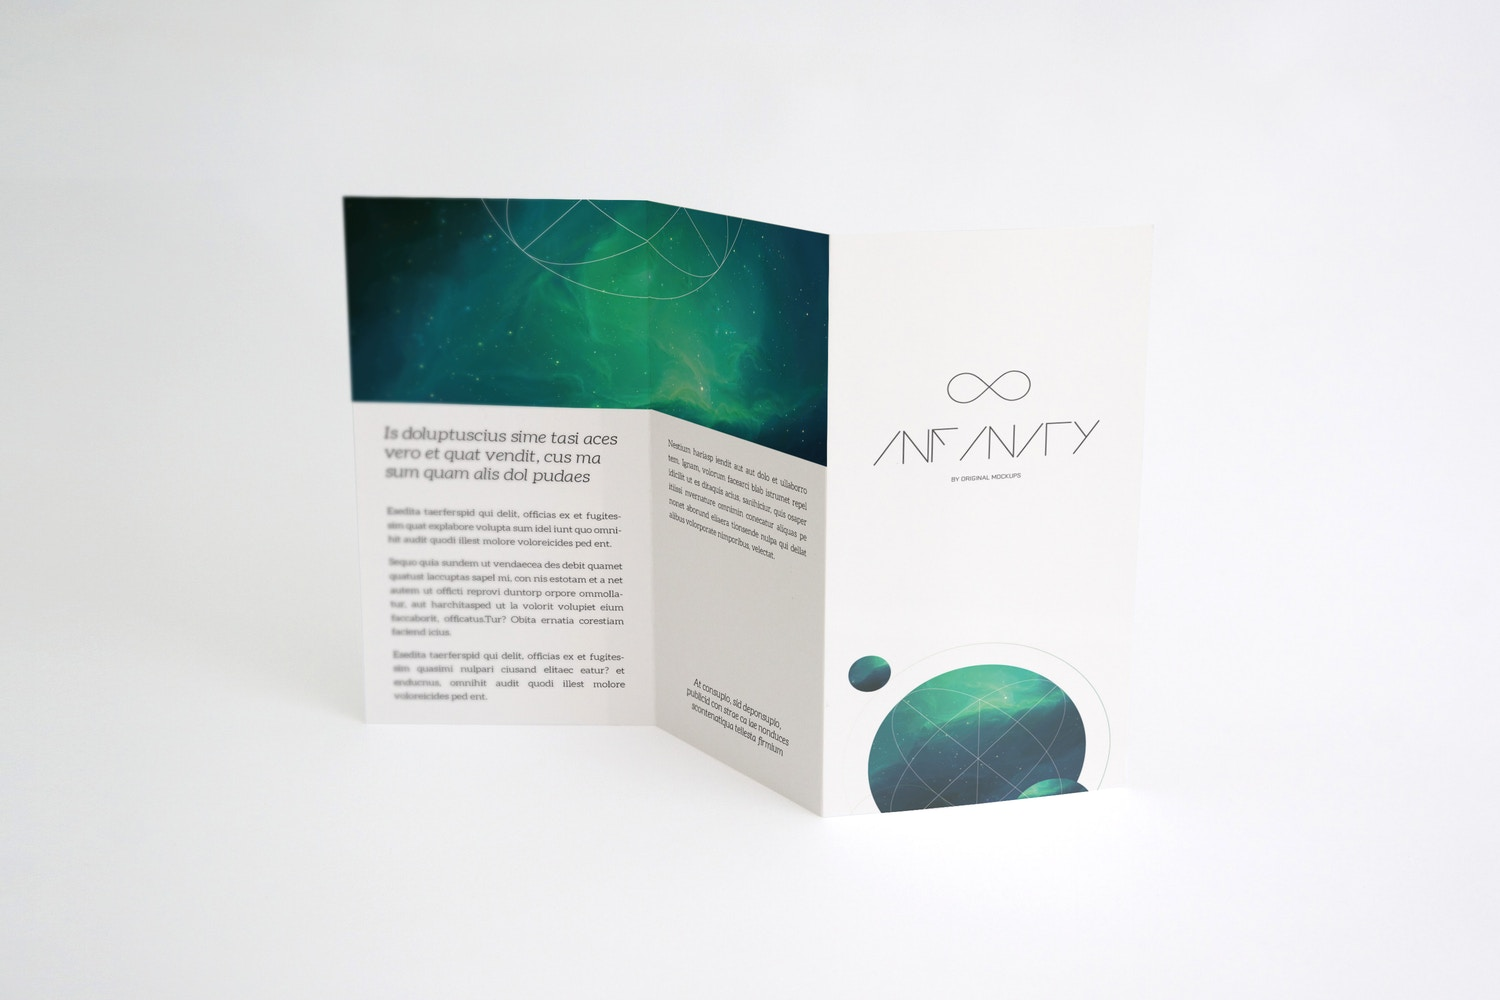 A4 Brochure Mockup 02 by Original Mockups on Original Mockups